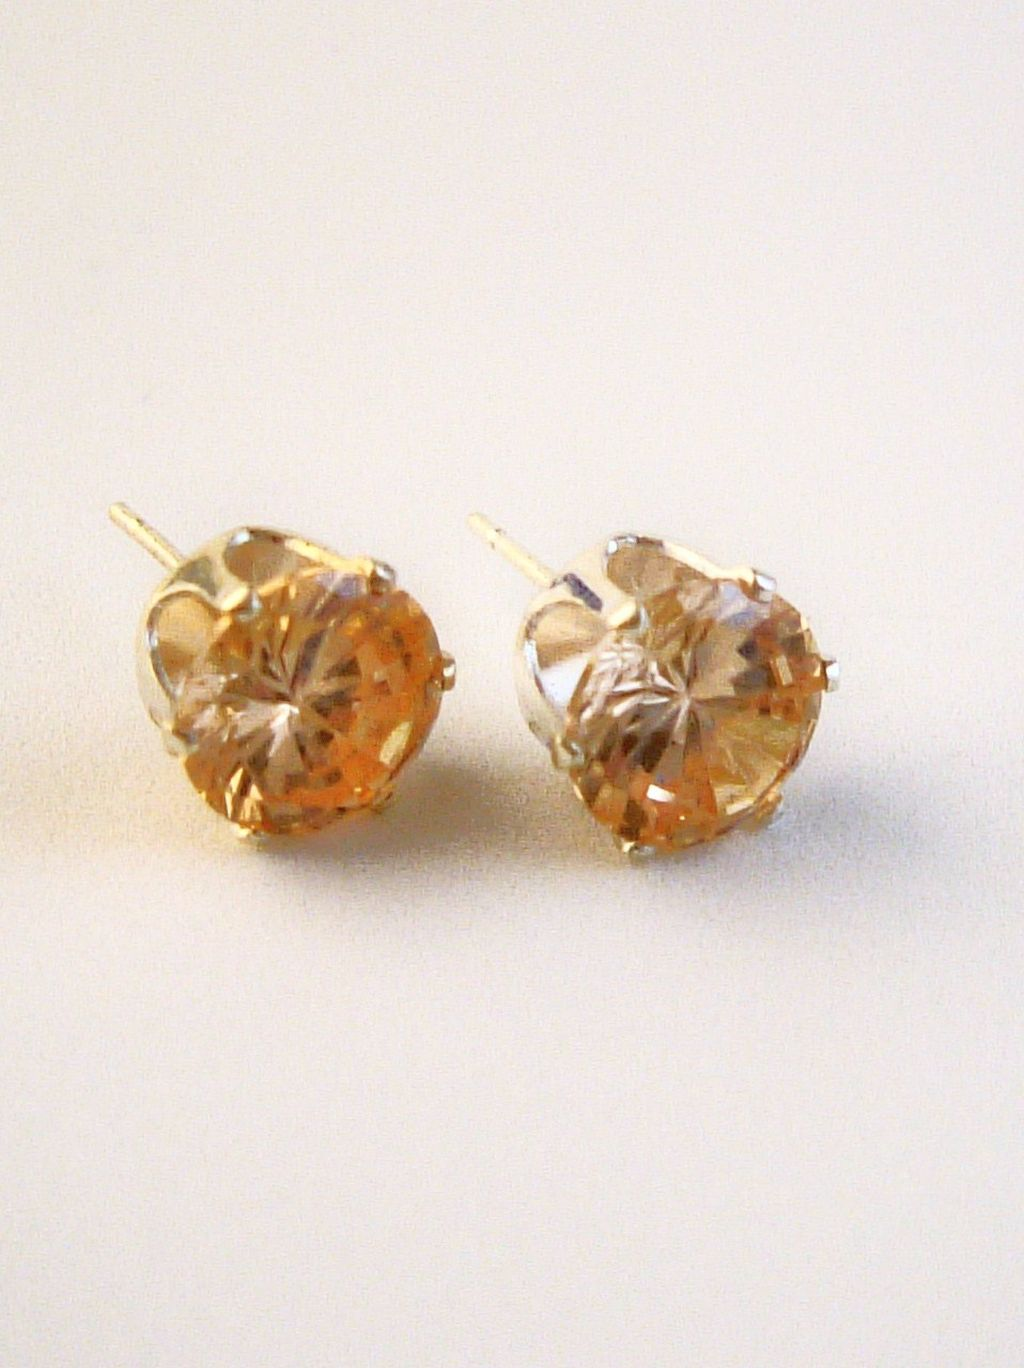 Topaz Round Cut Silver Stud Earrings Genuine CZ Cubic Zirconia